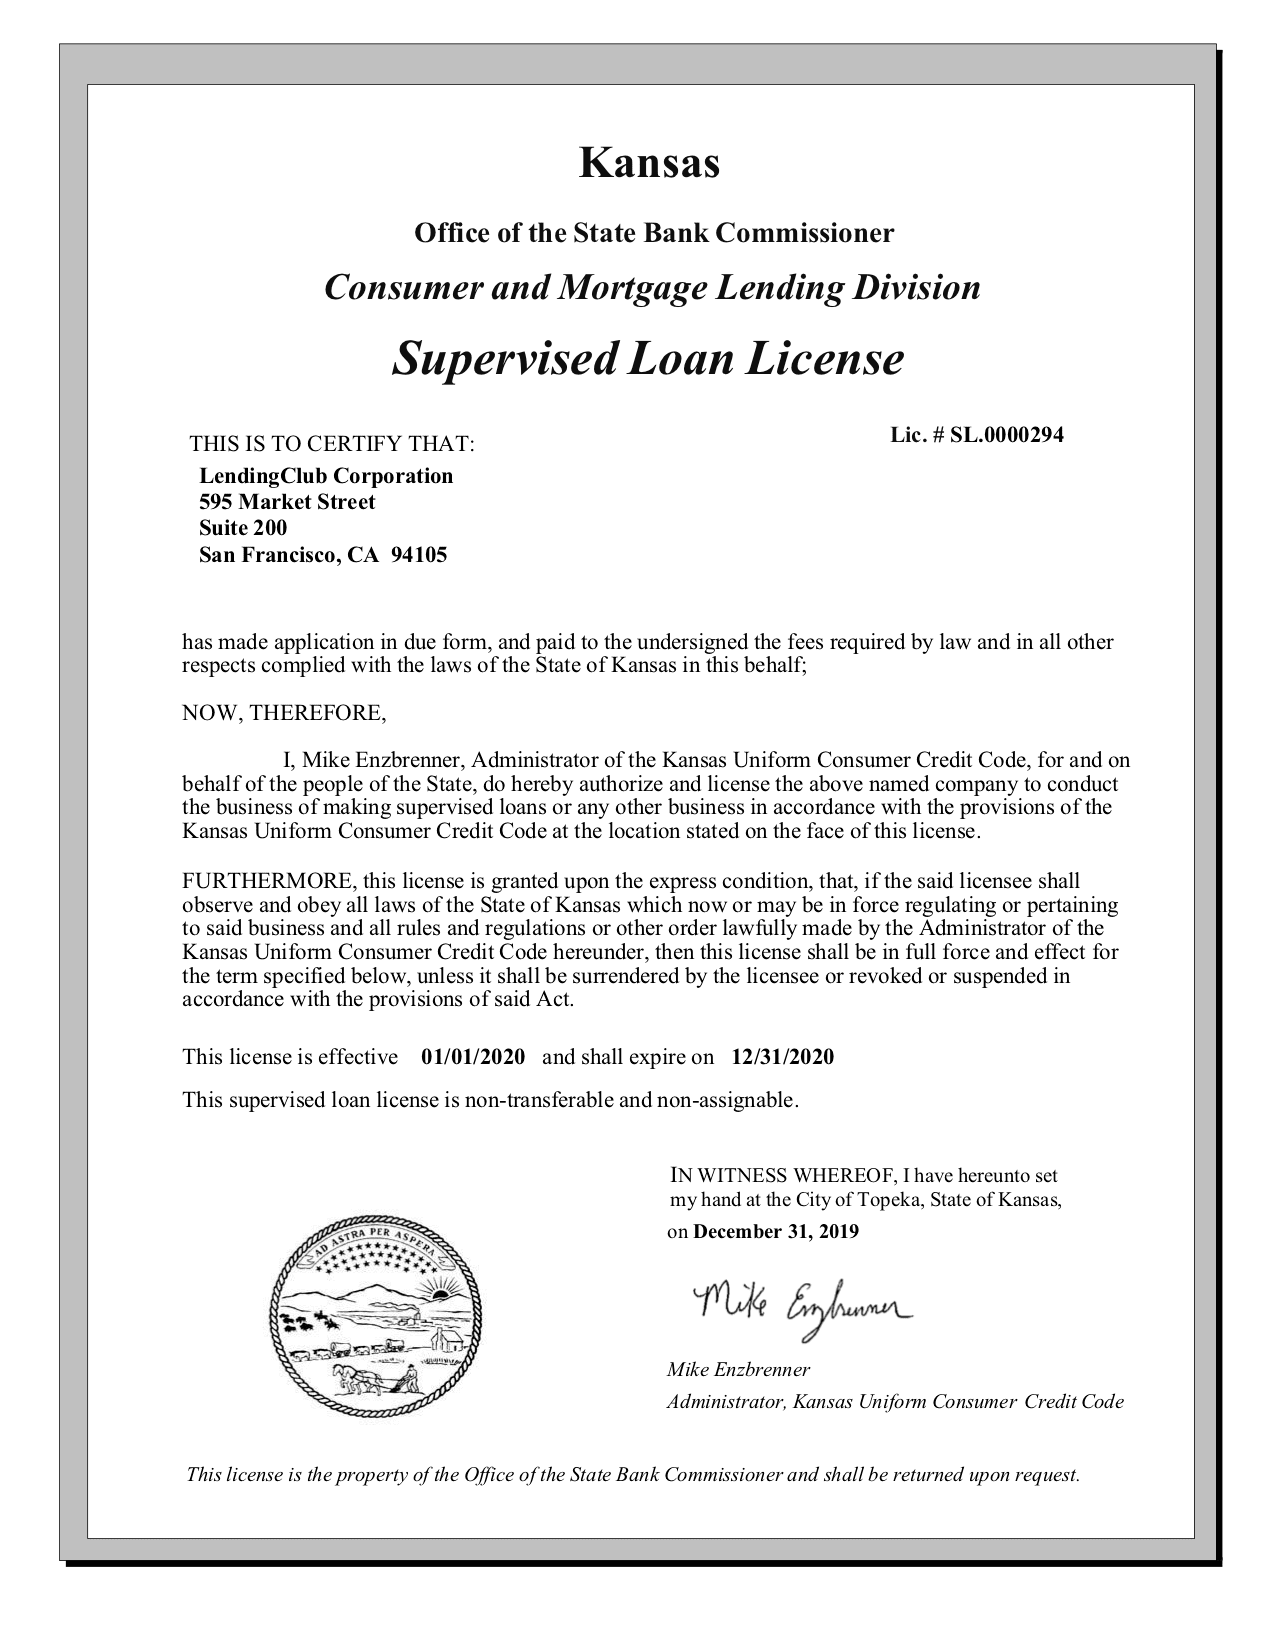 kansas-supervised-loan-license-2020